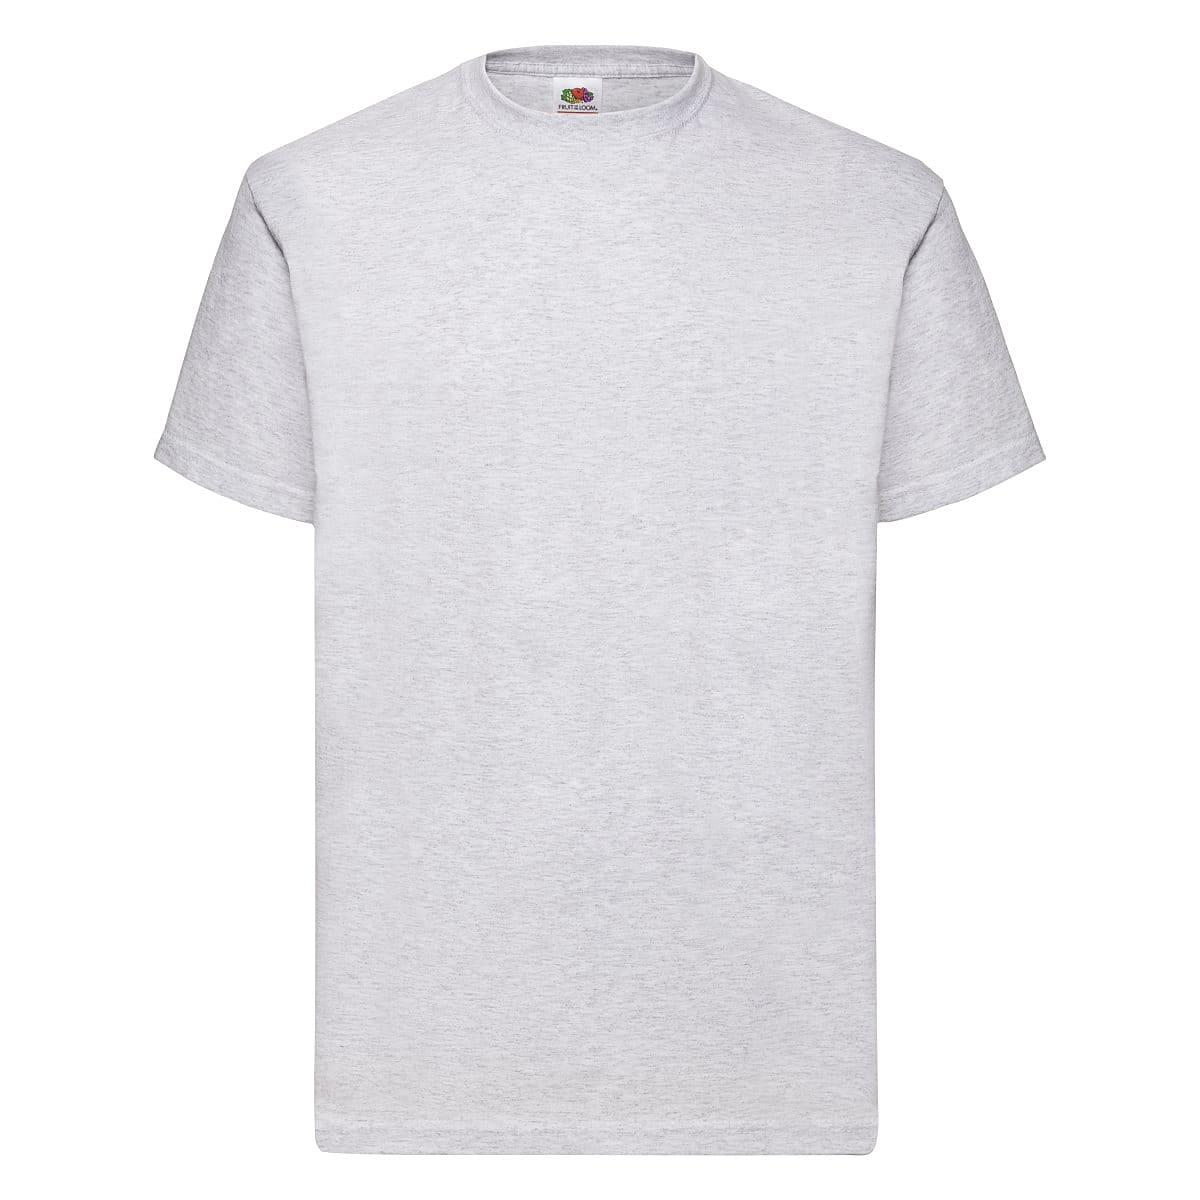 Fruit Of The Loom Valueweight T-Shirt in Ash Grey (Product Code: 61036)